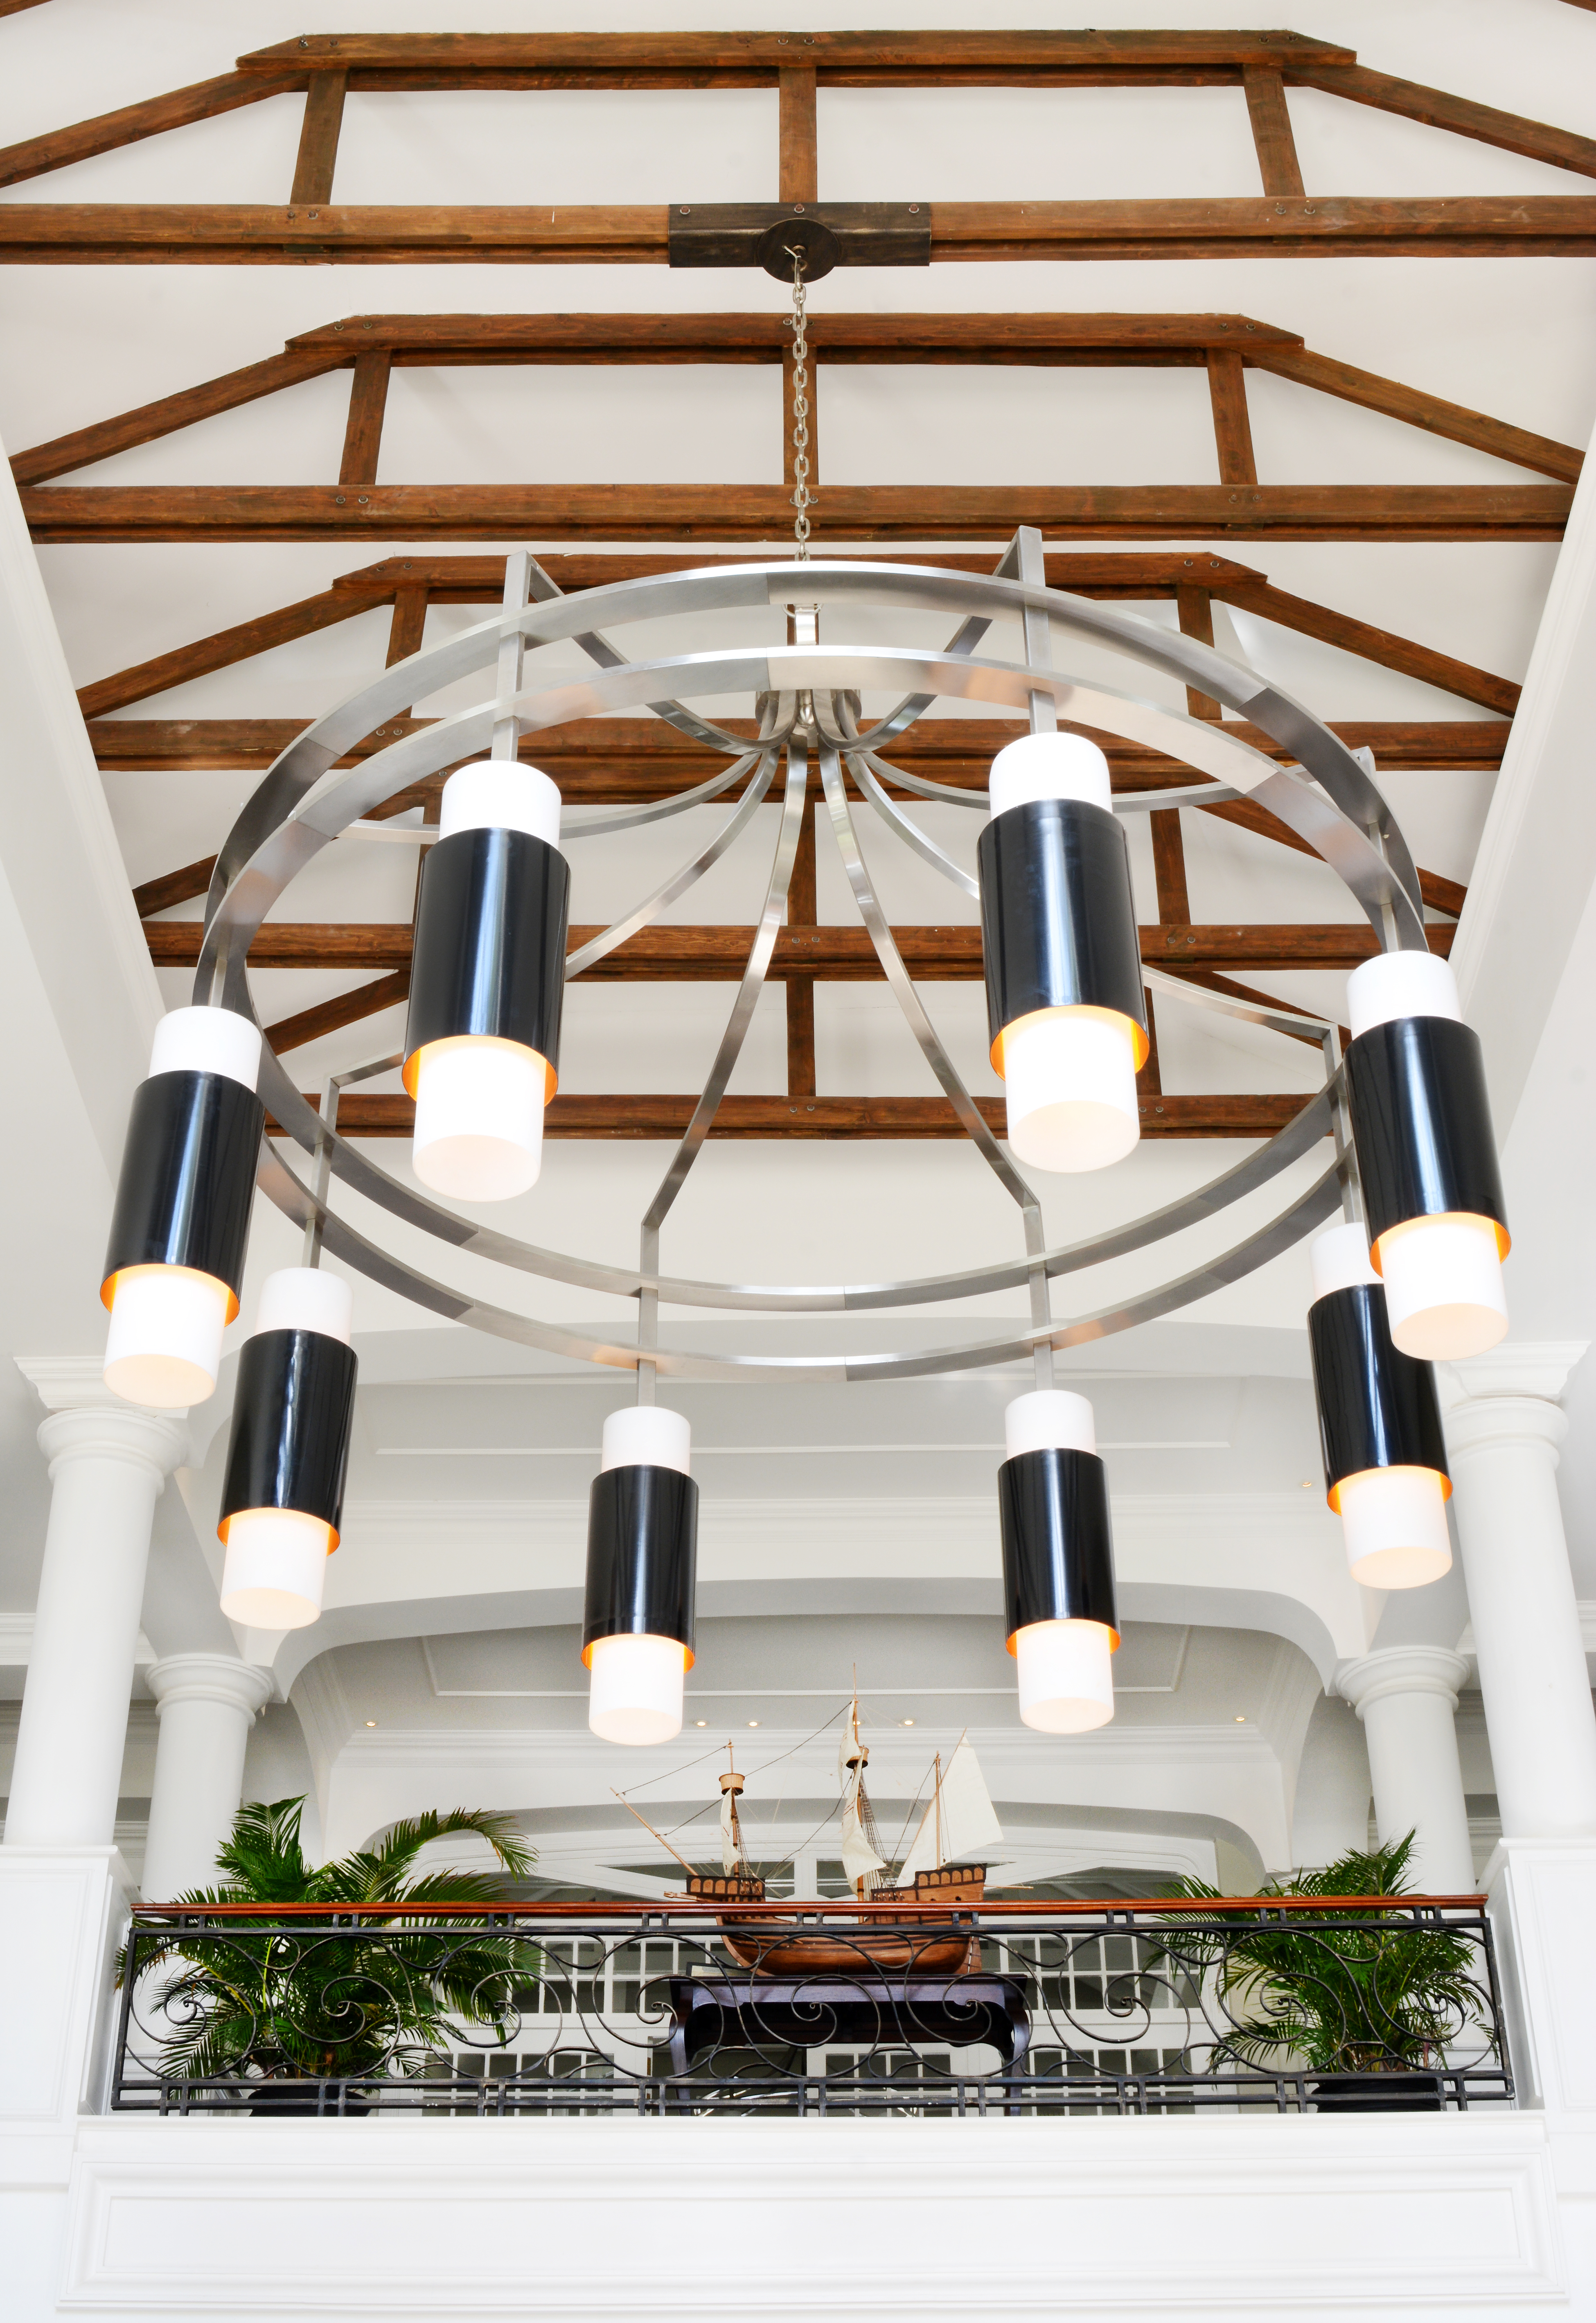 The Lighting at Reception Area